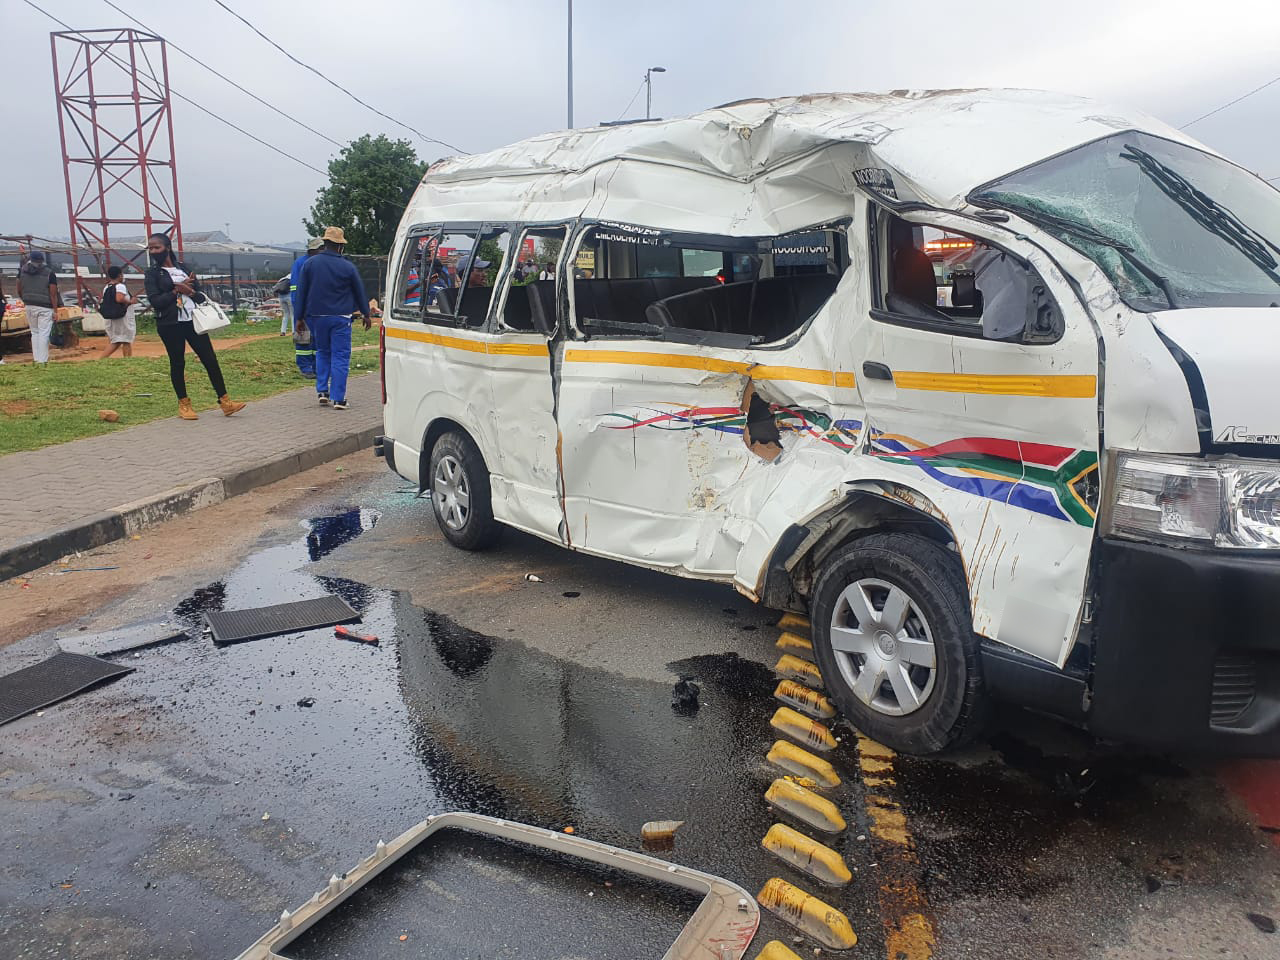 Bus and taxi collide leaving at least 25 injured in Riverlea